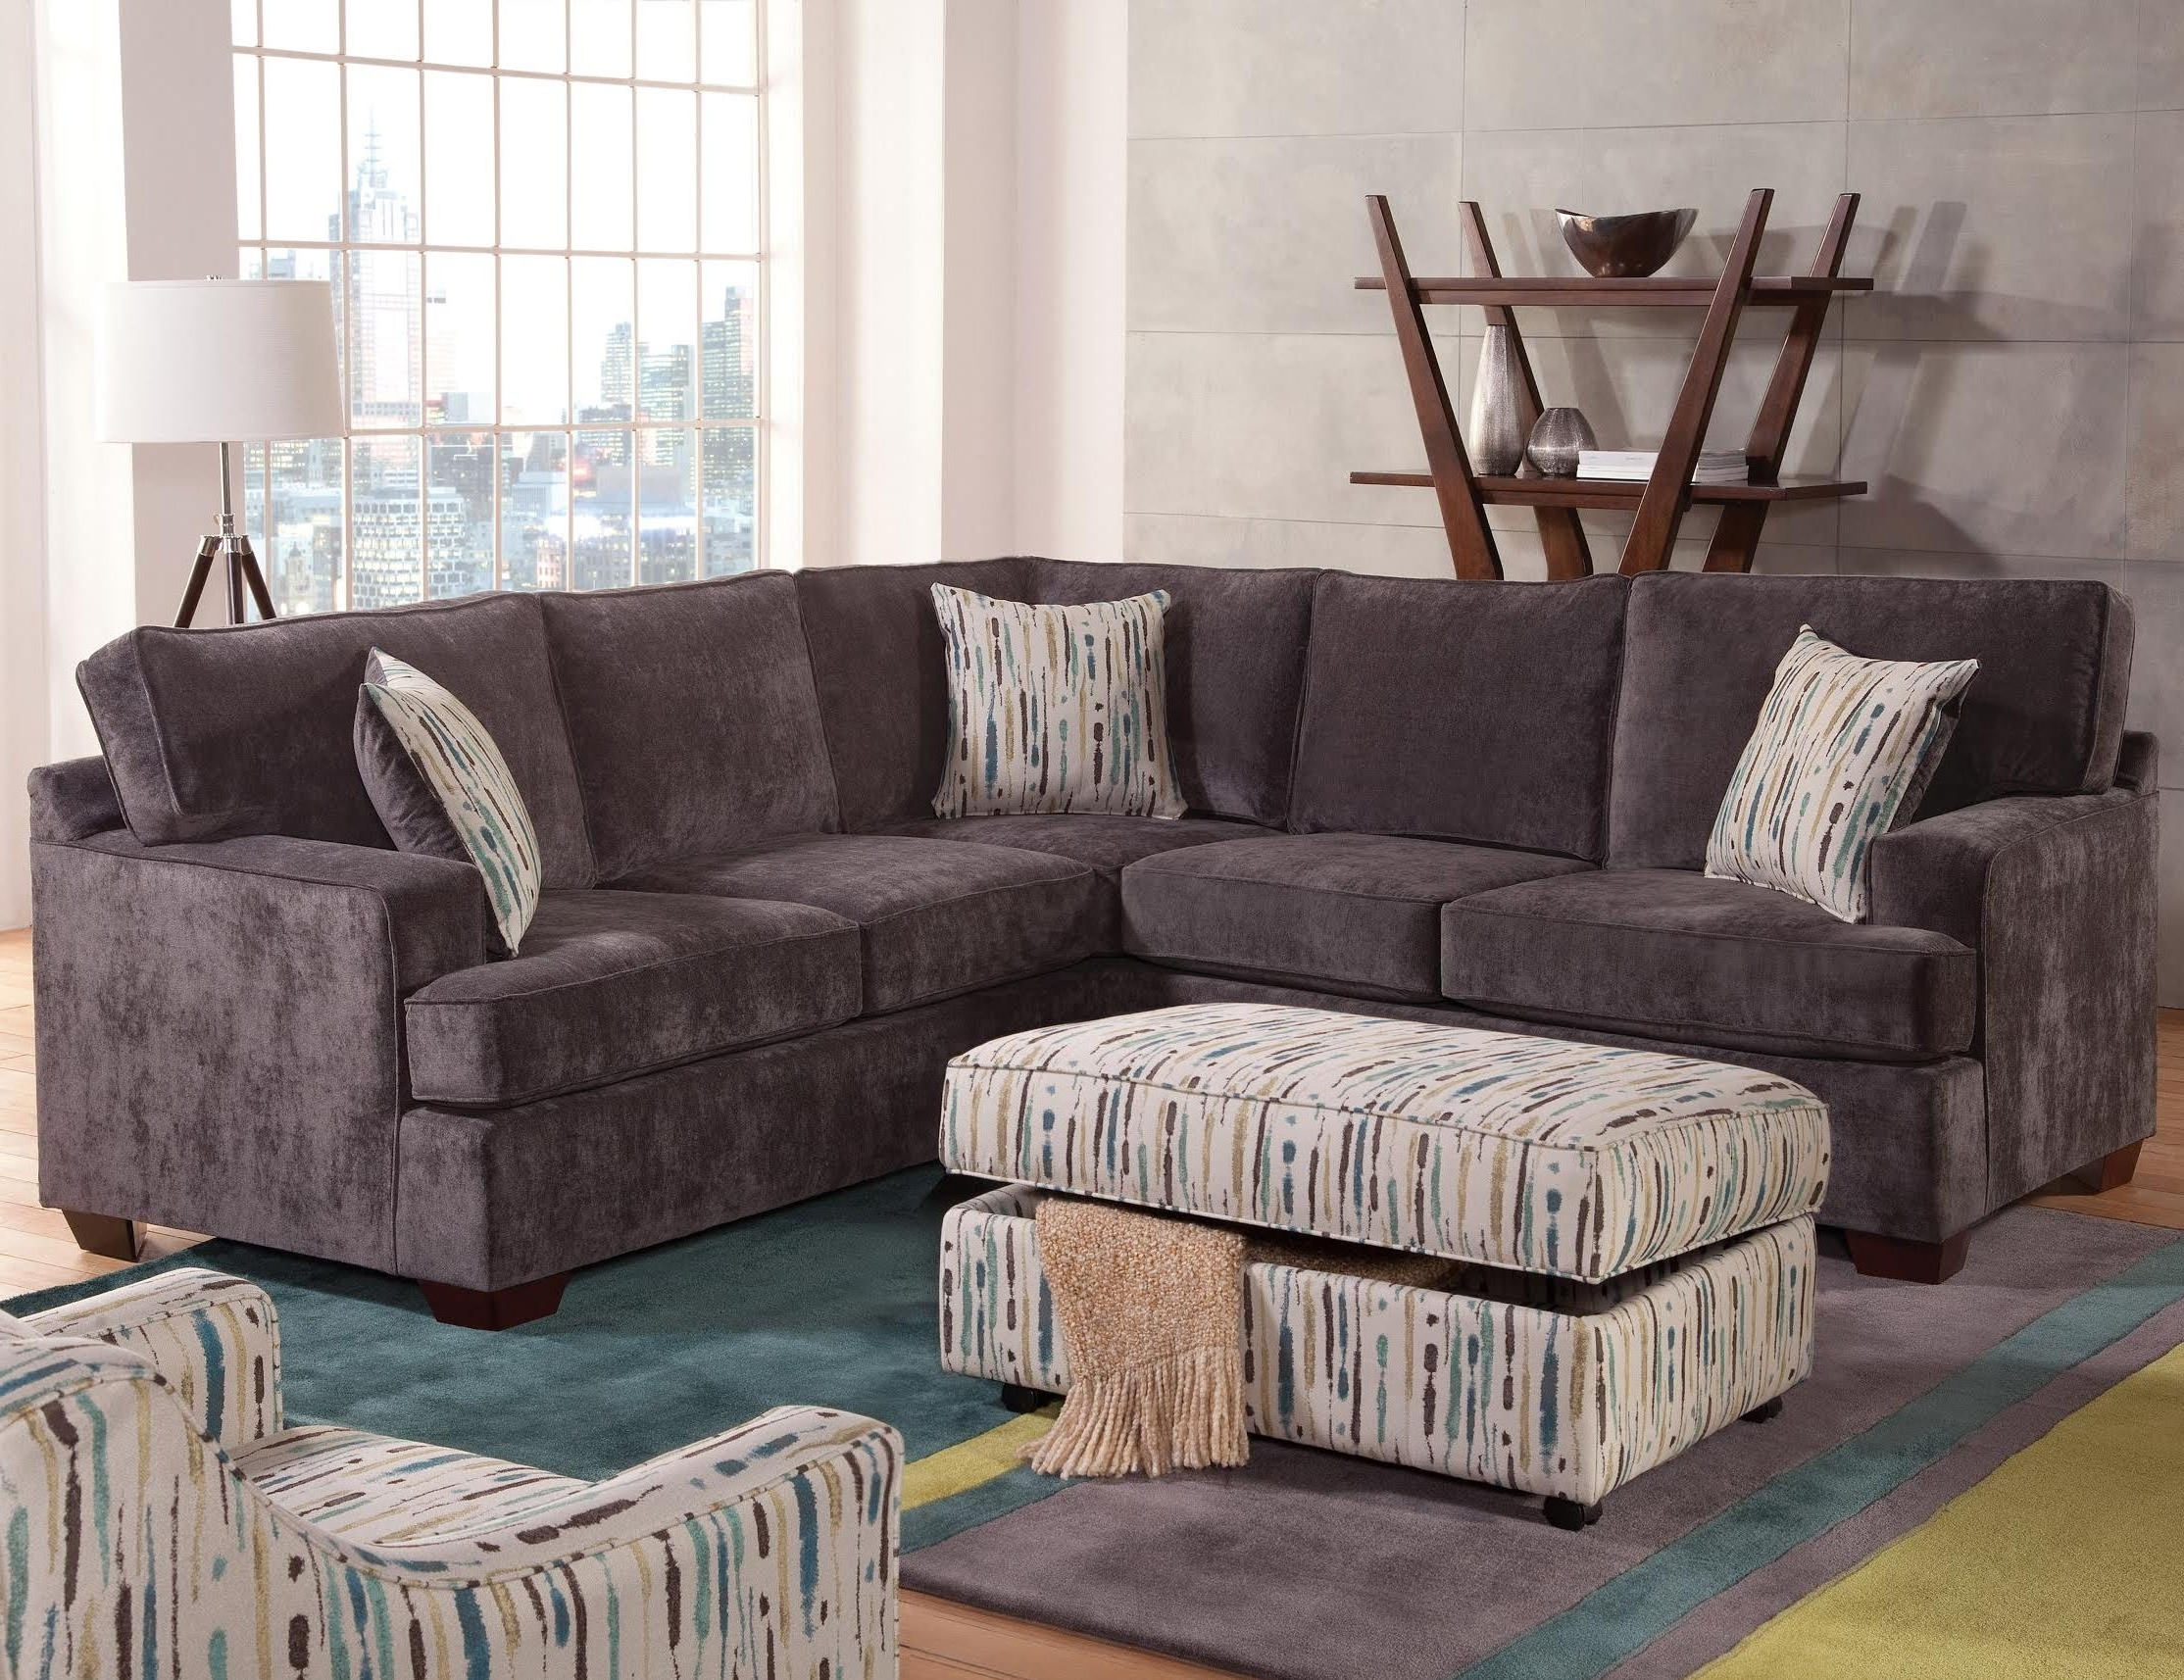 100X100 Sectional Sofas In Current Furniture : Zella Sectional Sofa Couch's Corner Berries Sectional (Gallery 1 of 15)